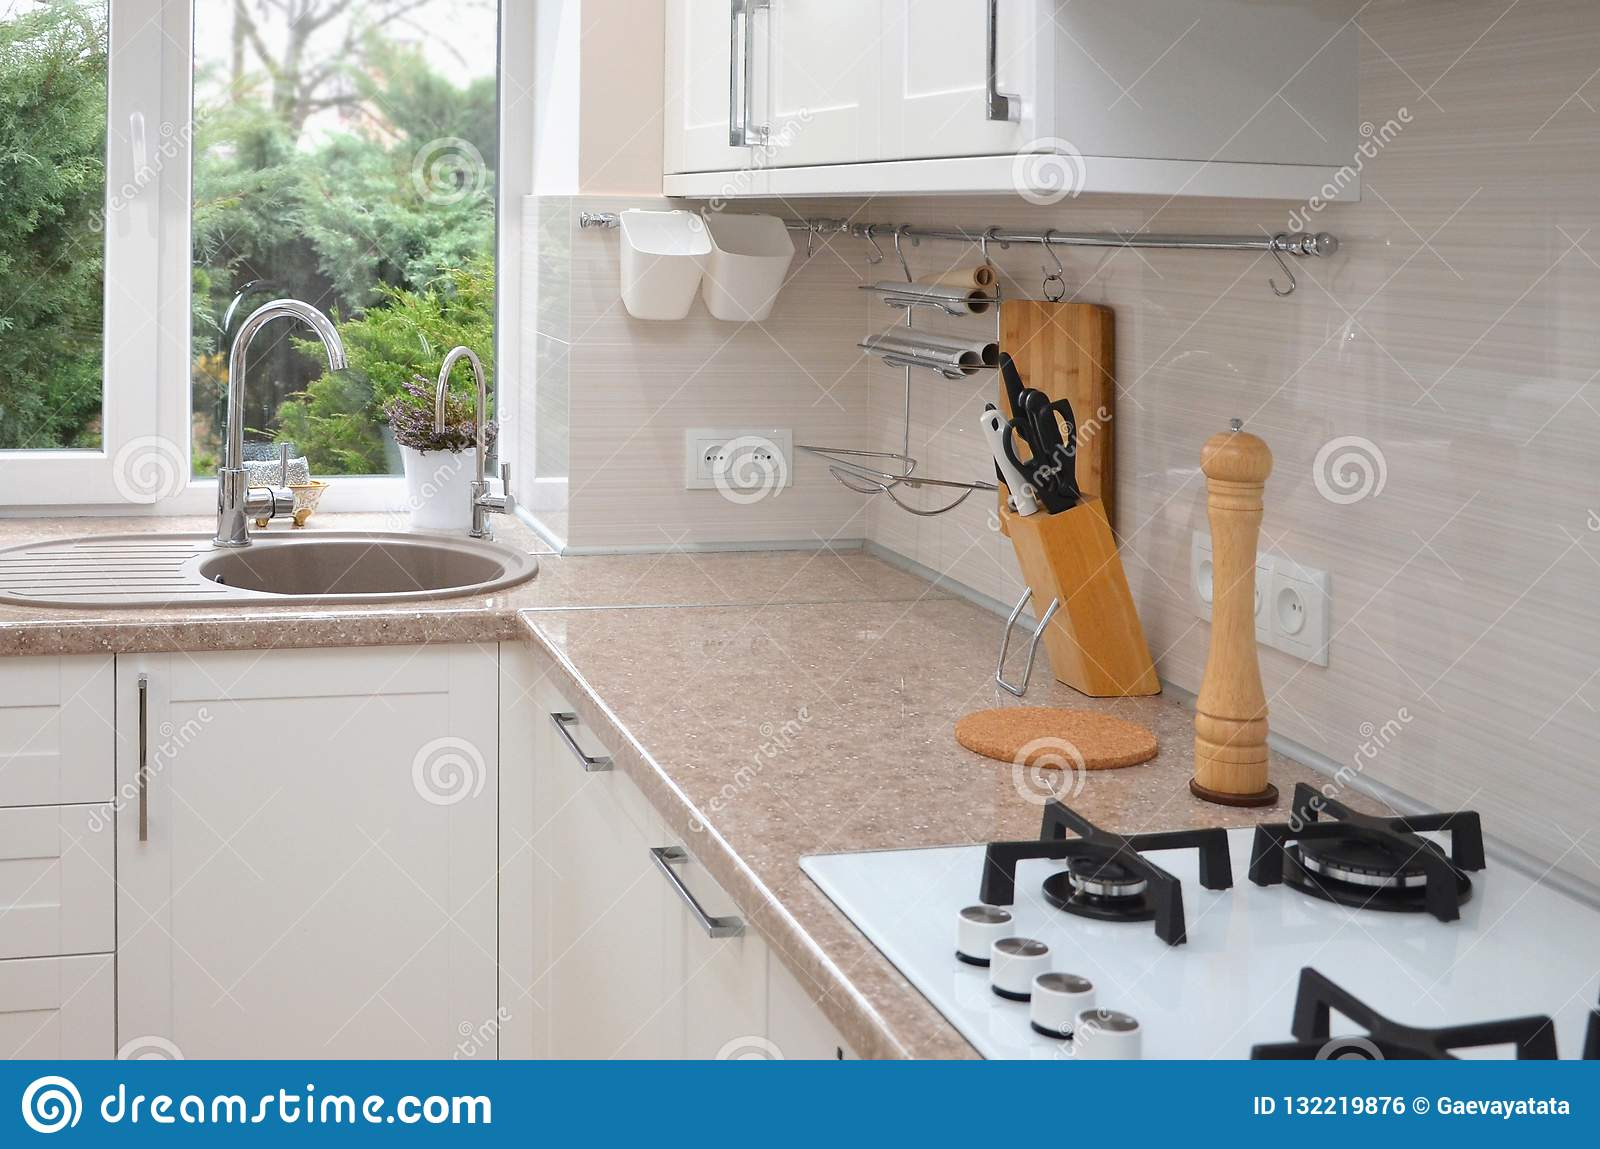 Part of the kitchen interior against the window